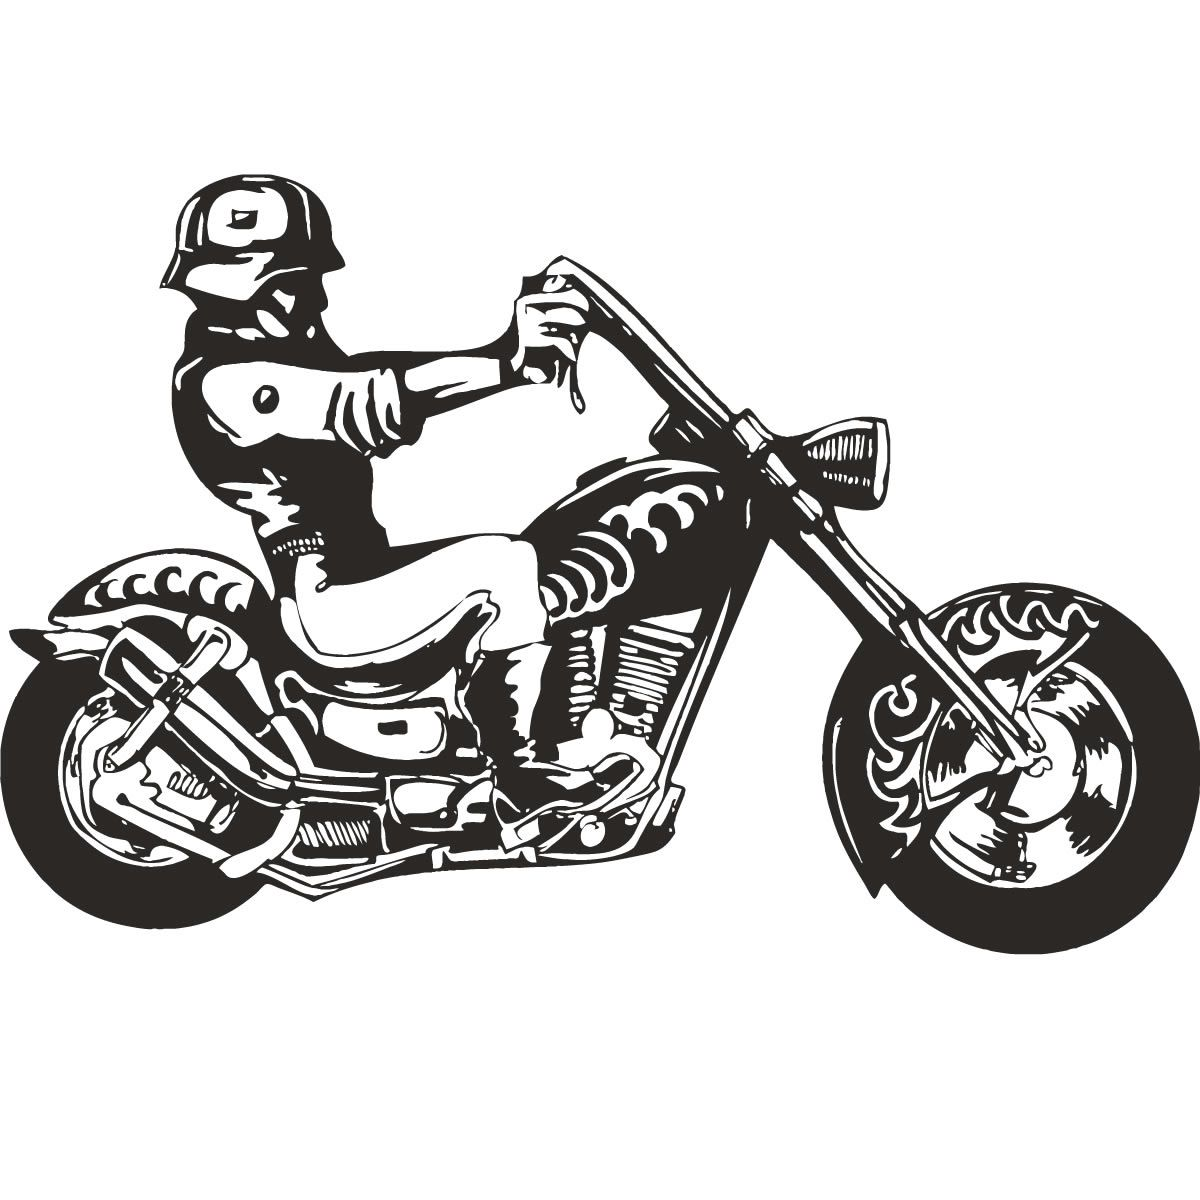 Hells Angel Biker Motorbike Wall Art Decal Stickers